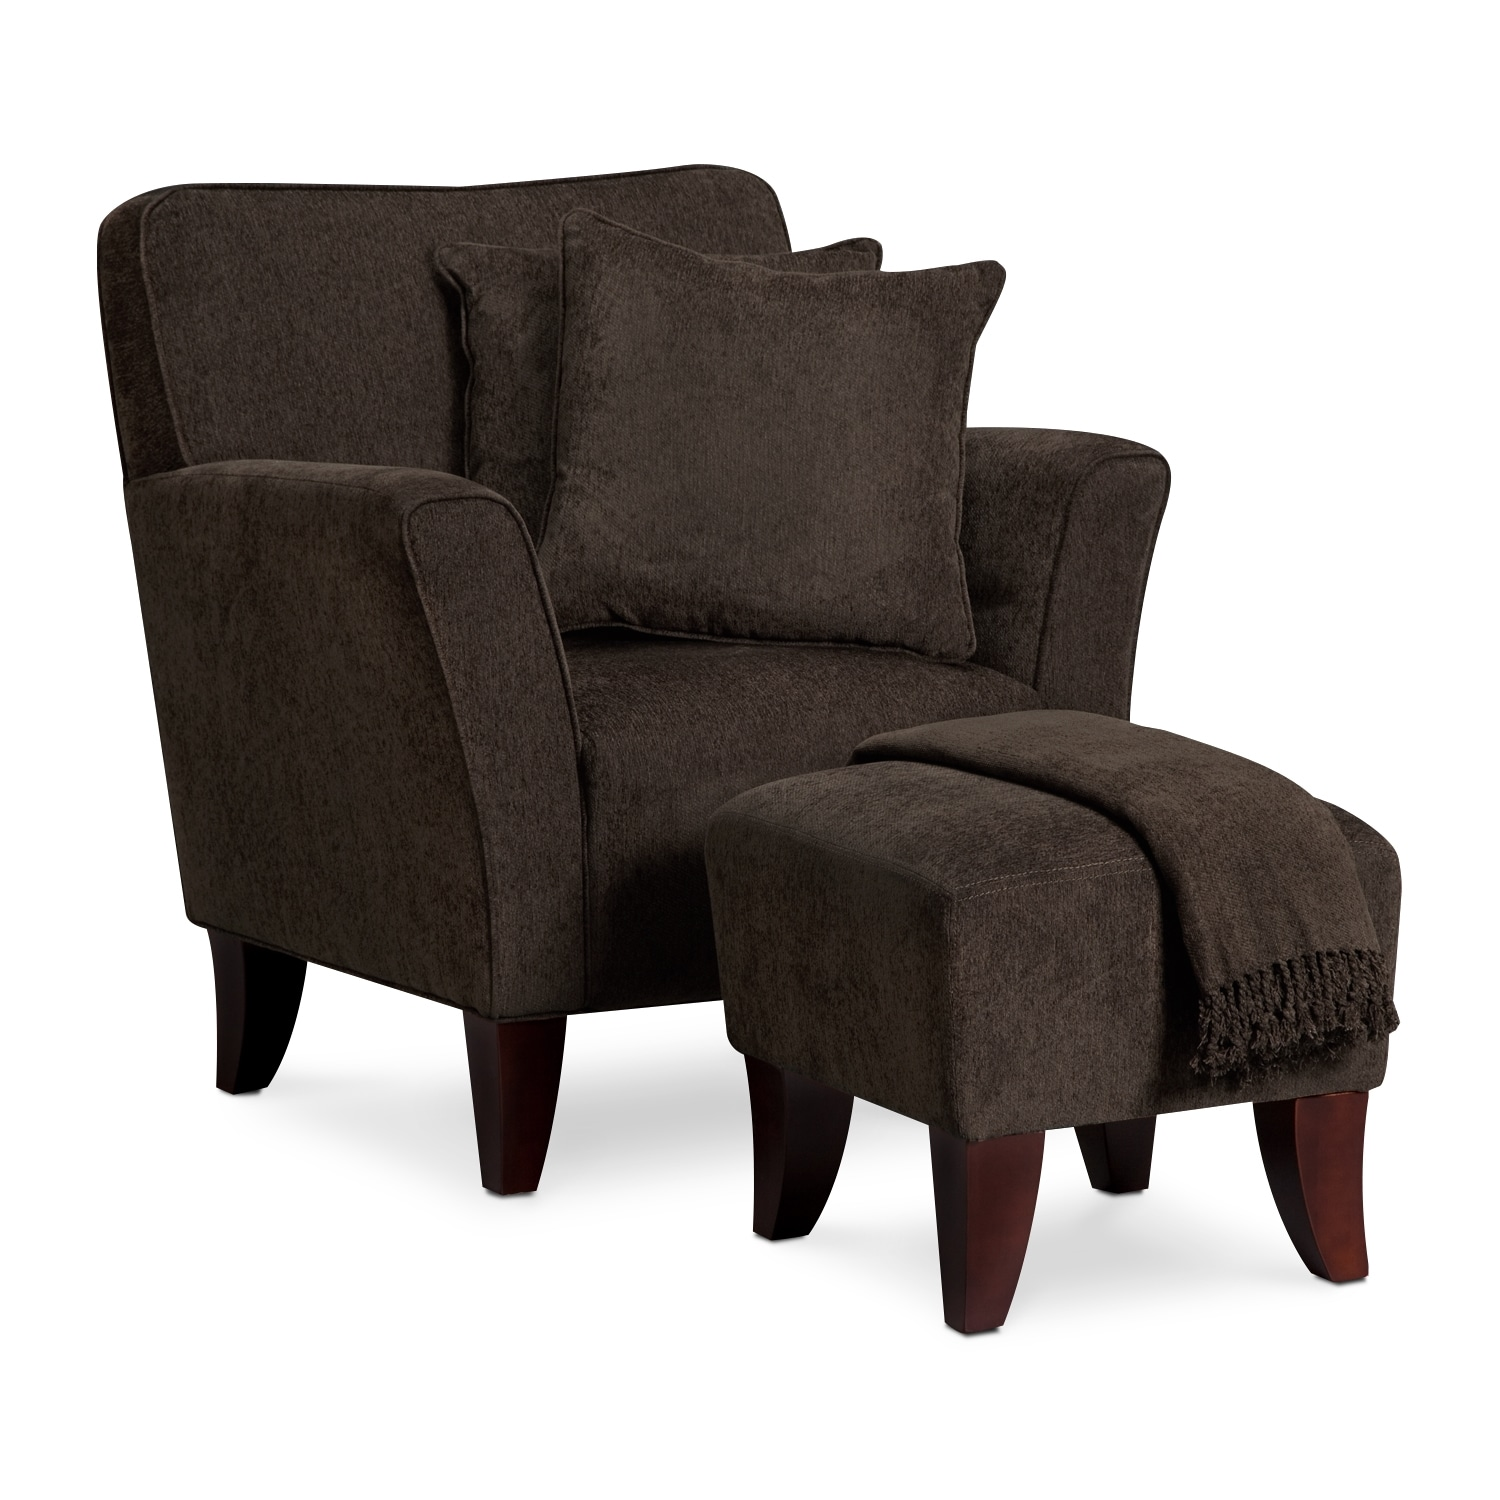 Living Room Furniture - Celeste Chair, Ottoman, Pillows and Throw - Chocolate